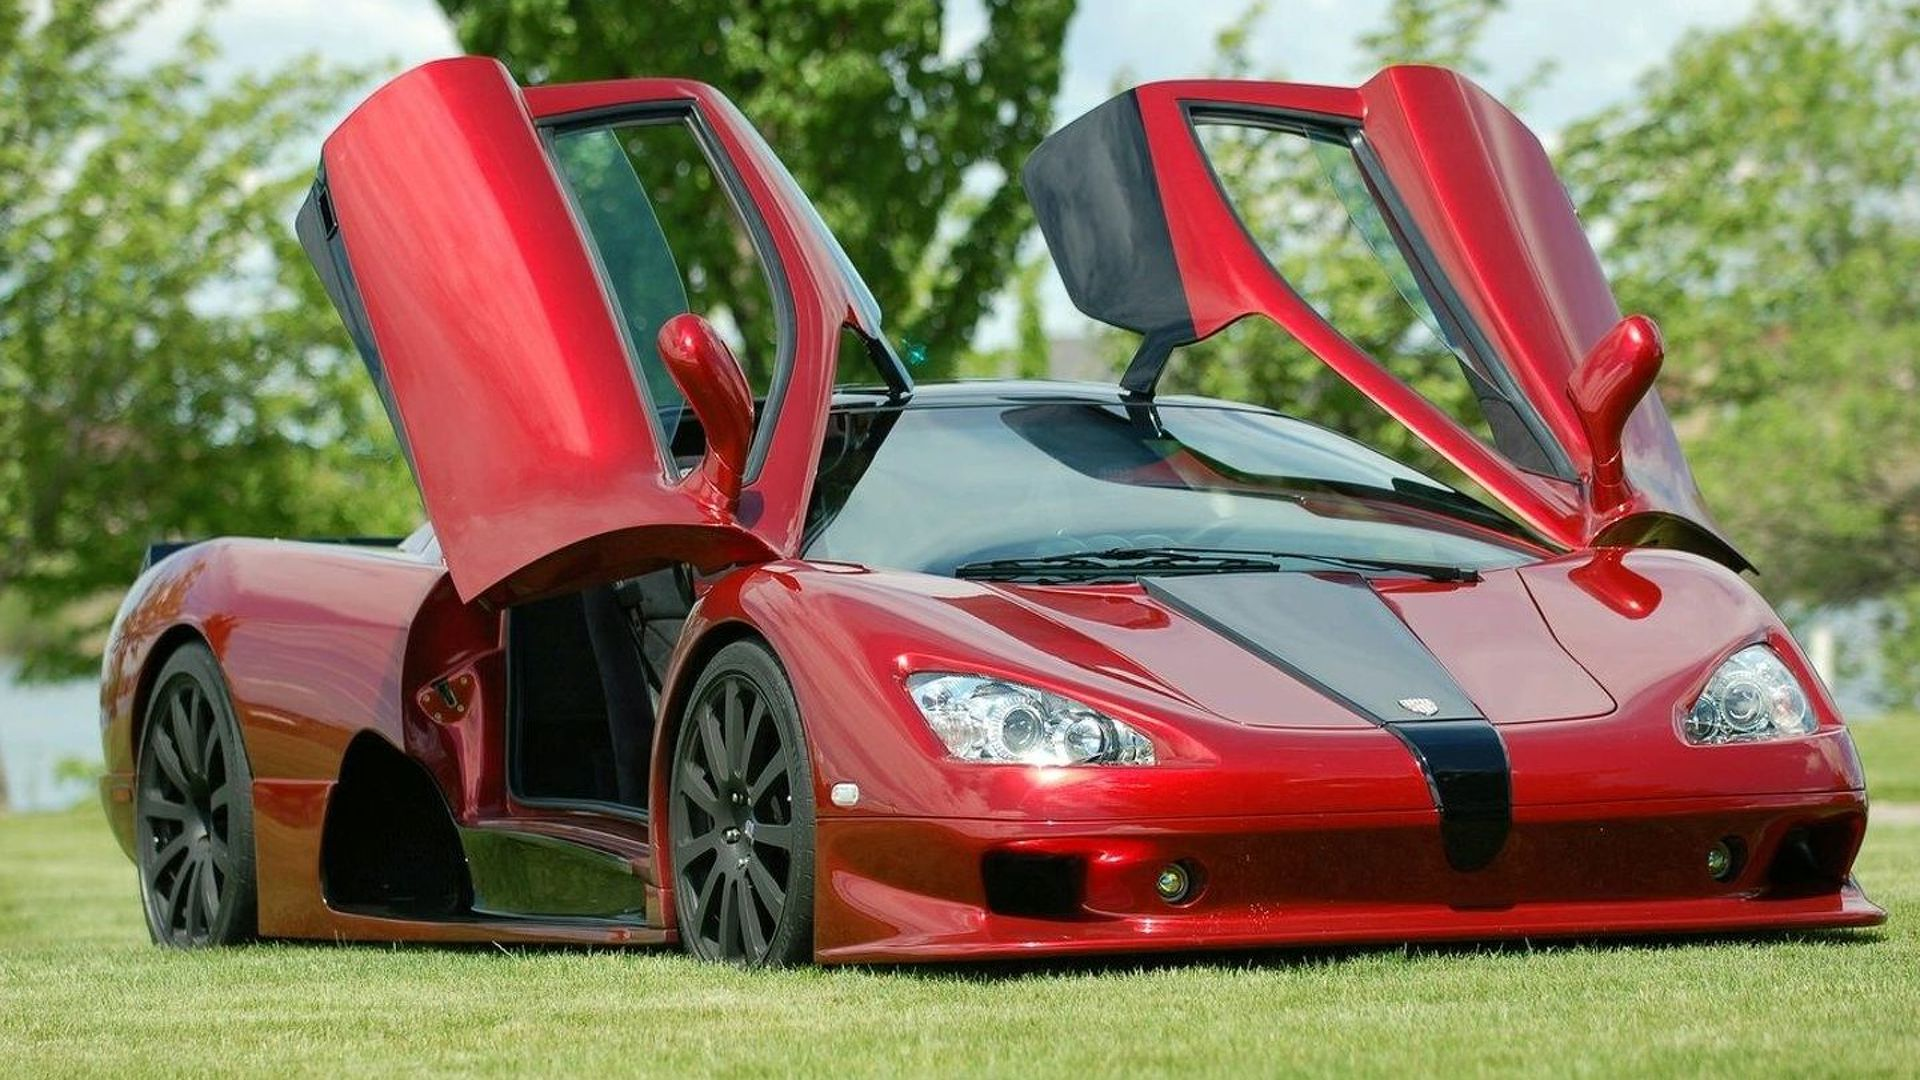 Second Generation Ssc Ultimate Aero To Debut August